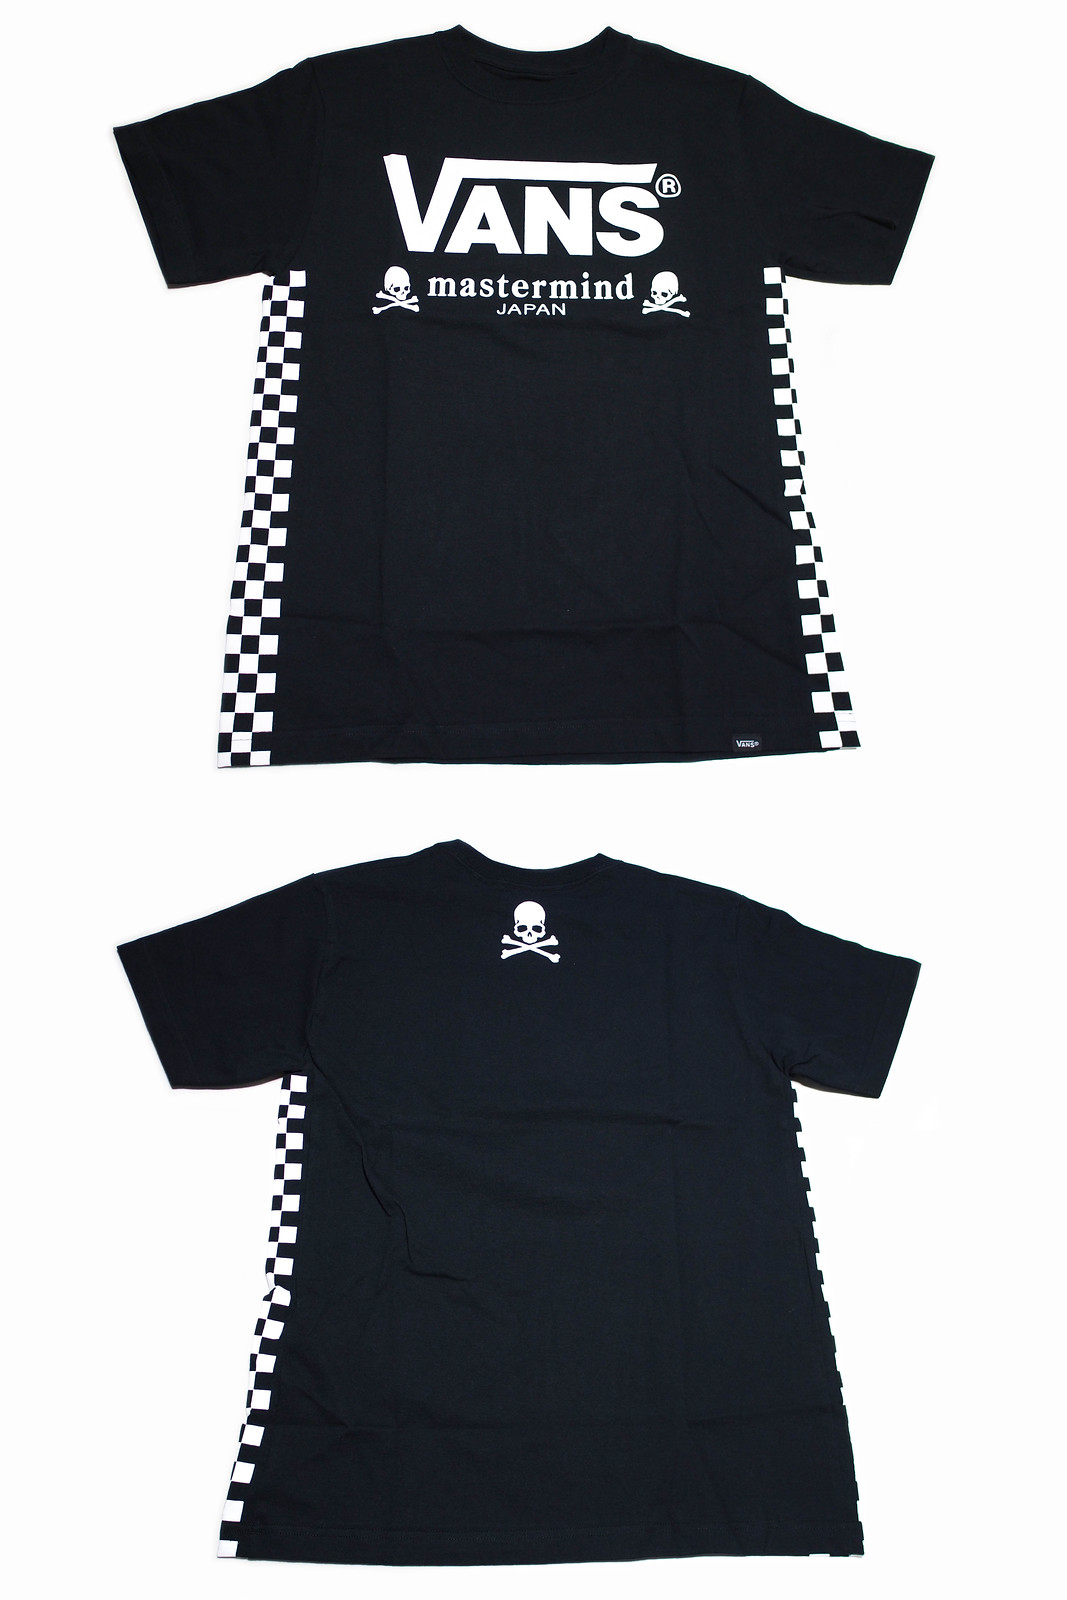 VANS × mastermind JAPAN | SIDE CHECKER S/S T-Shirts